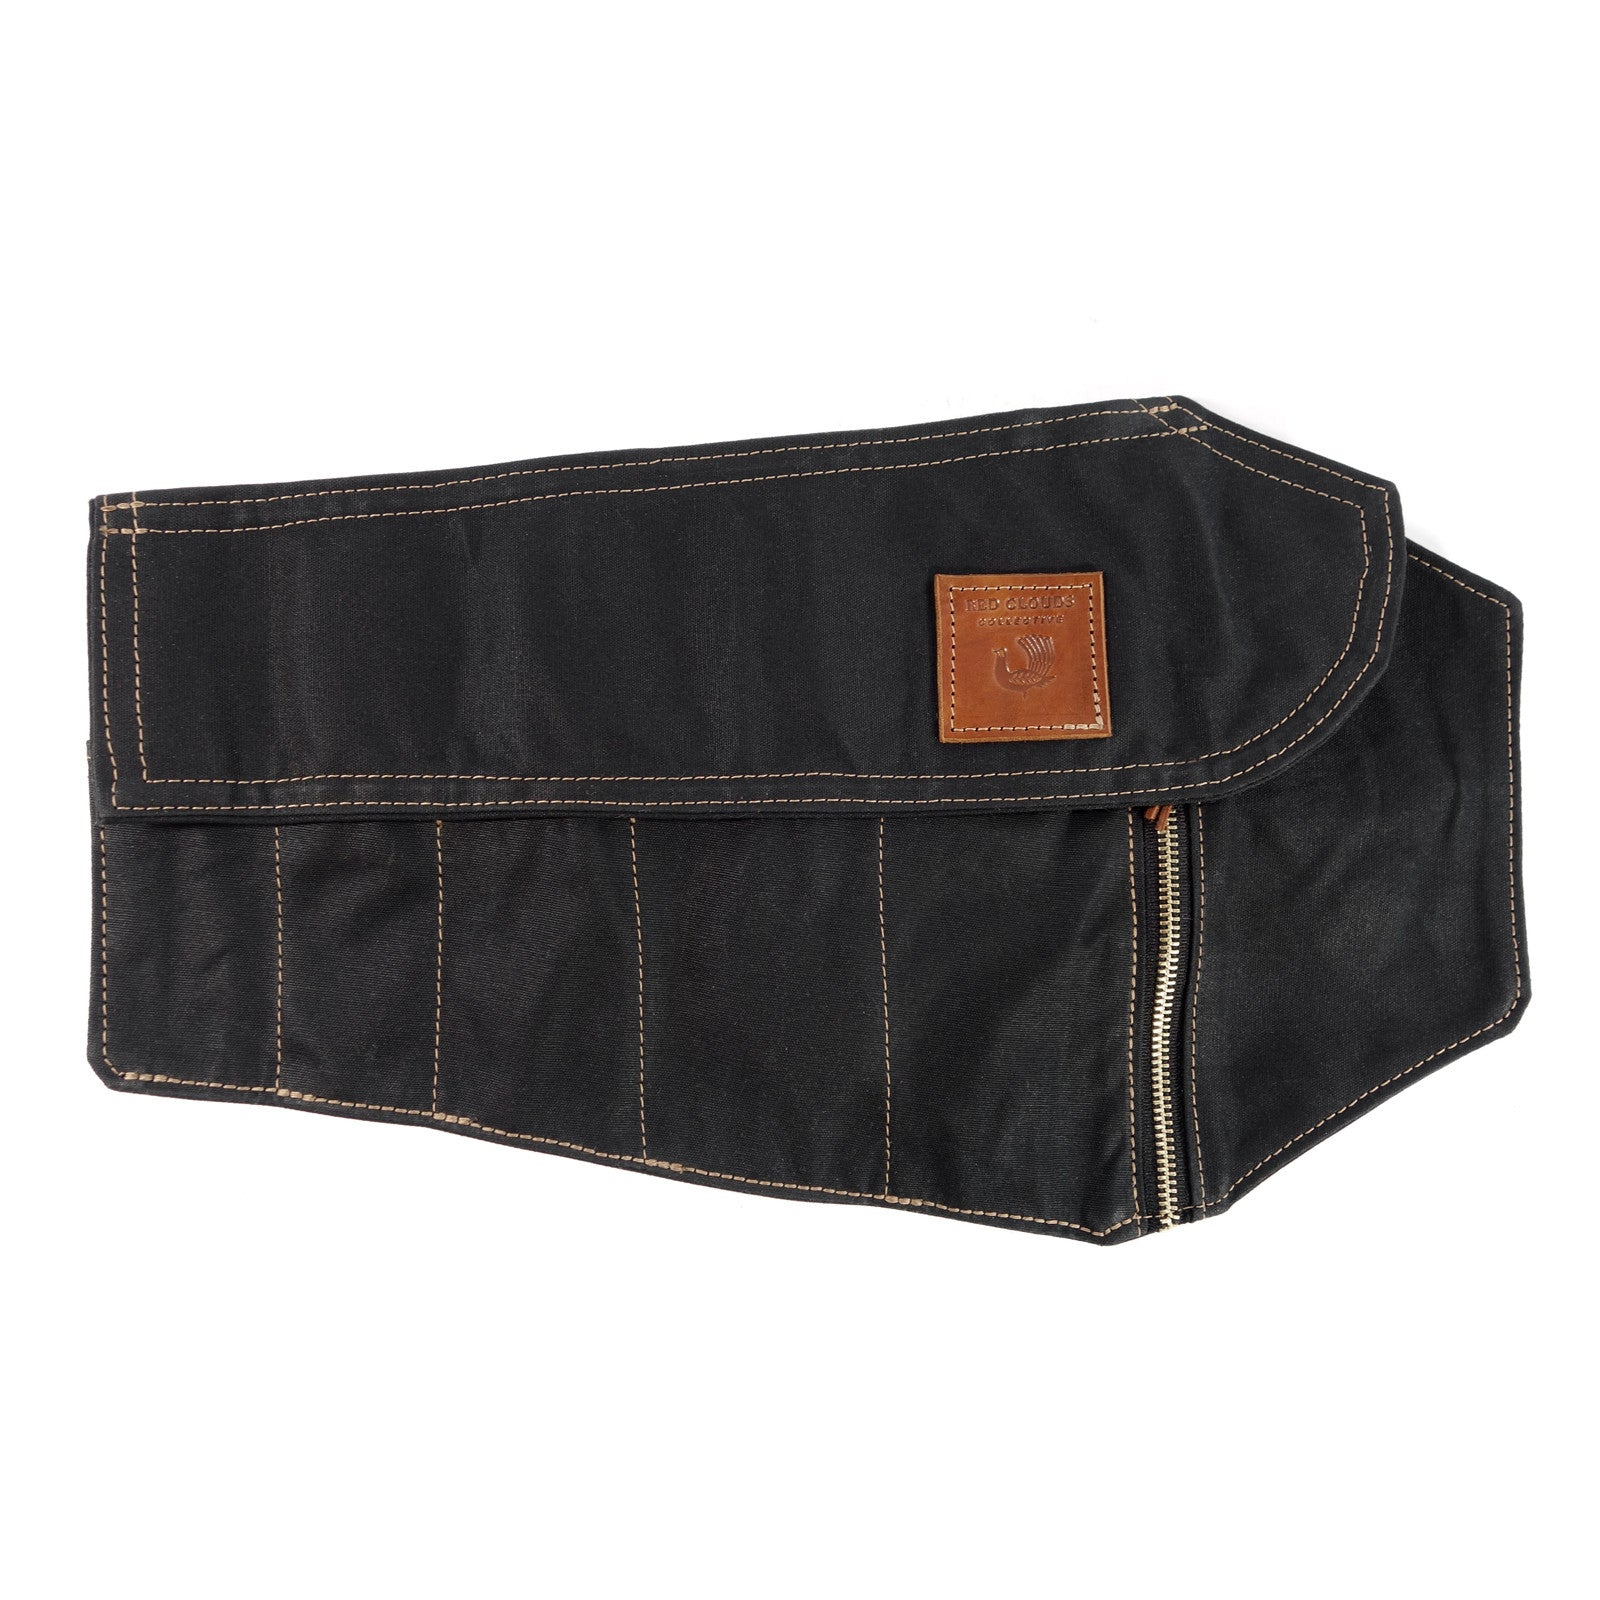 Coffin Tool Roll - Black